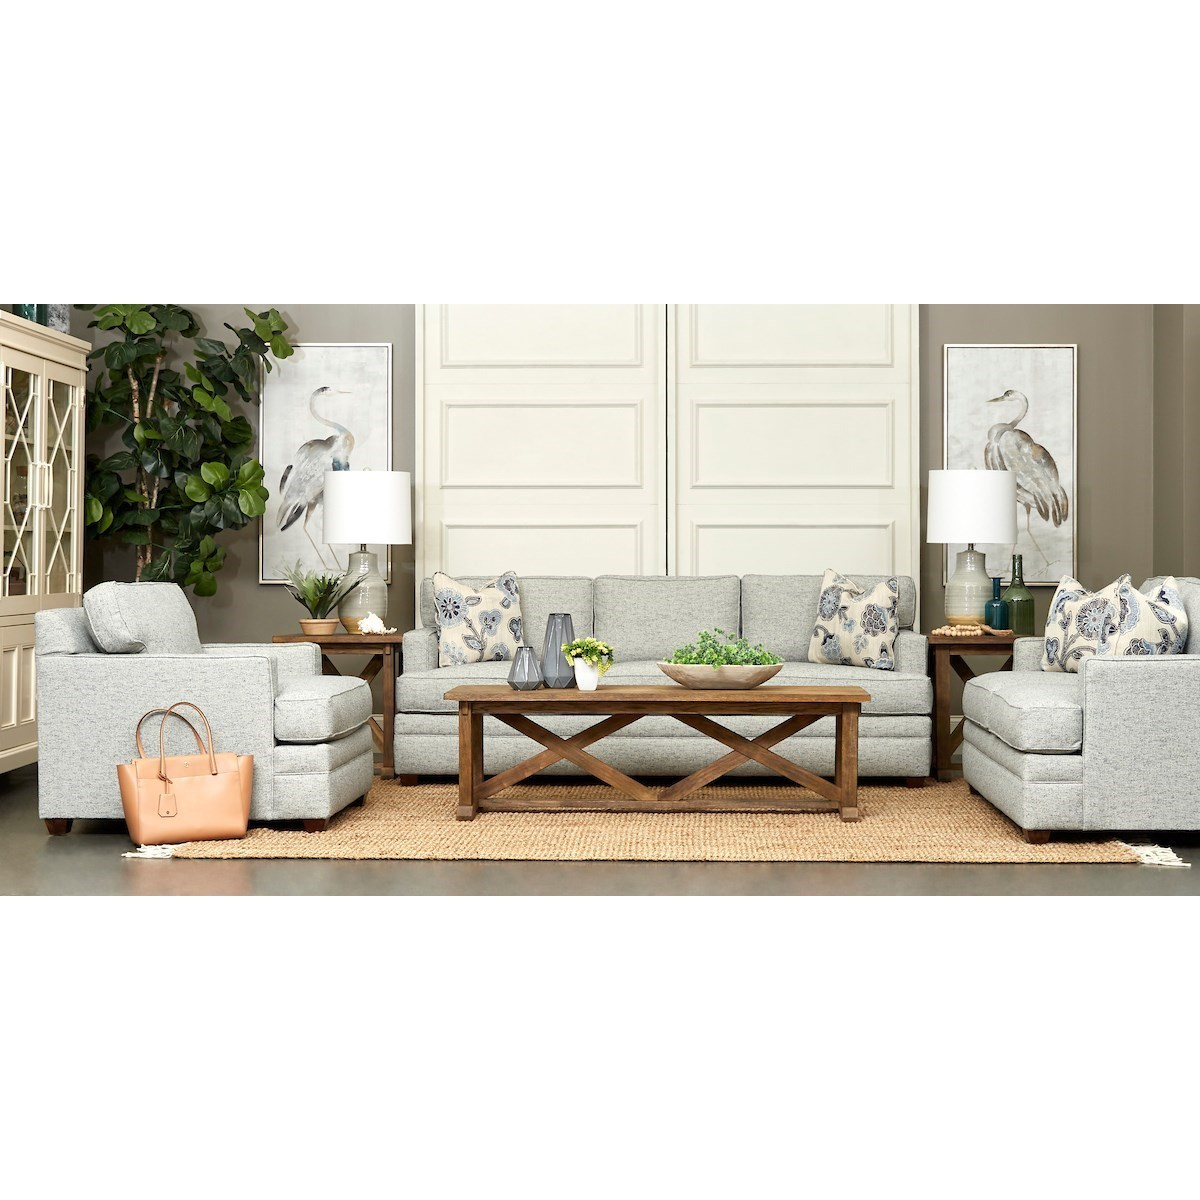 Living Your Way Living Room Group by Klaussner at Van Hill Furniture